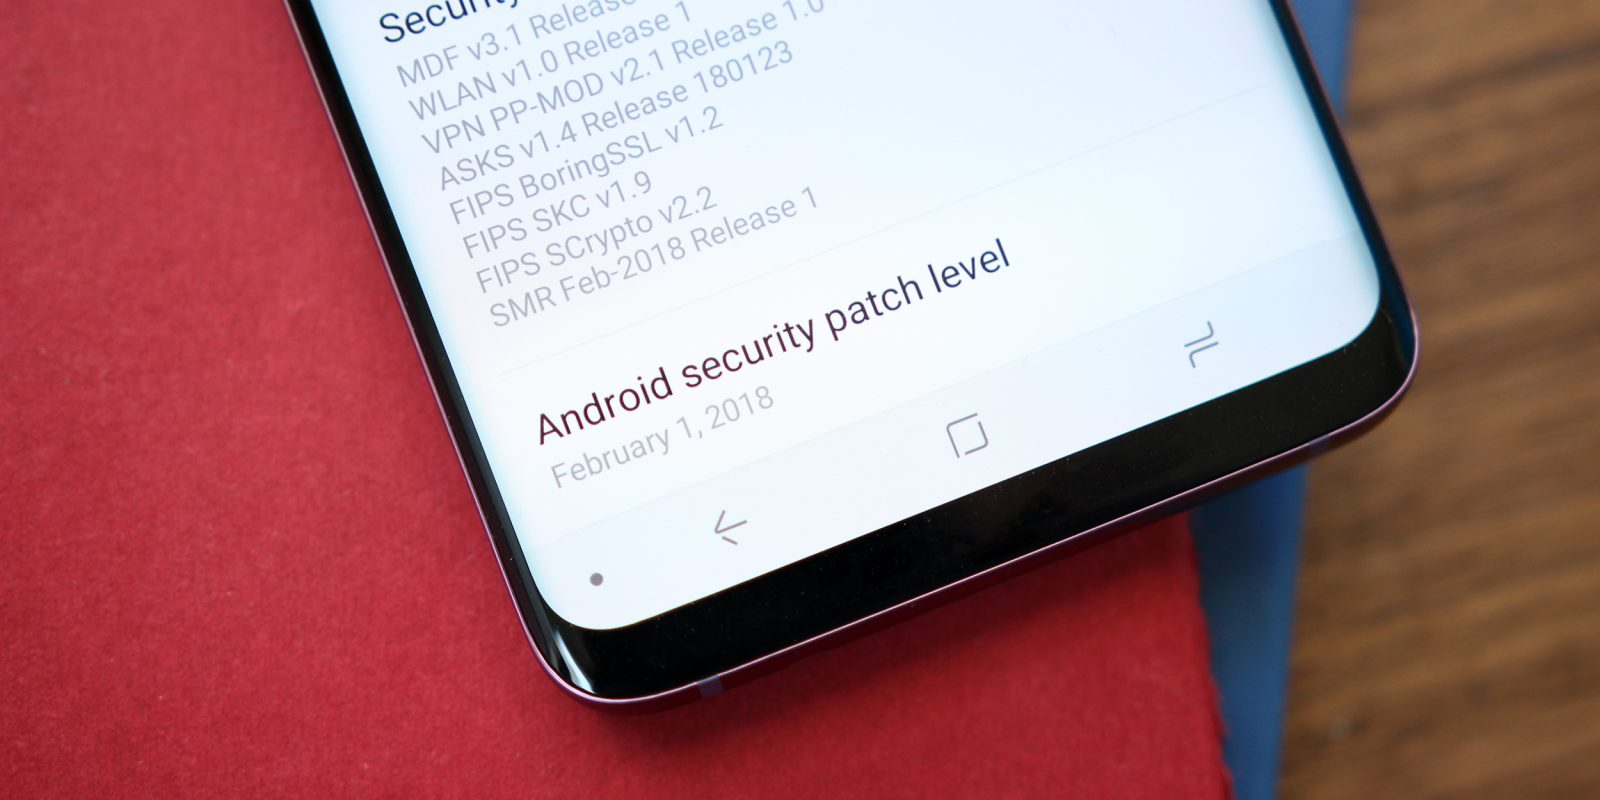 How to check if your phone is missing security patches with